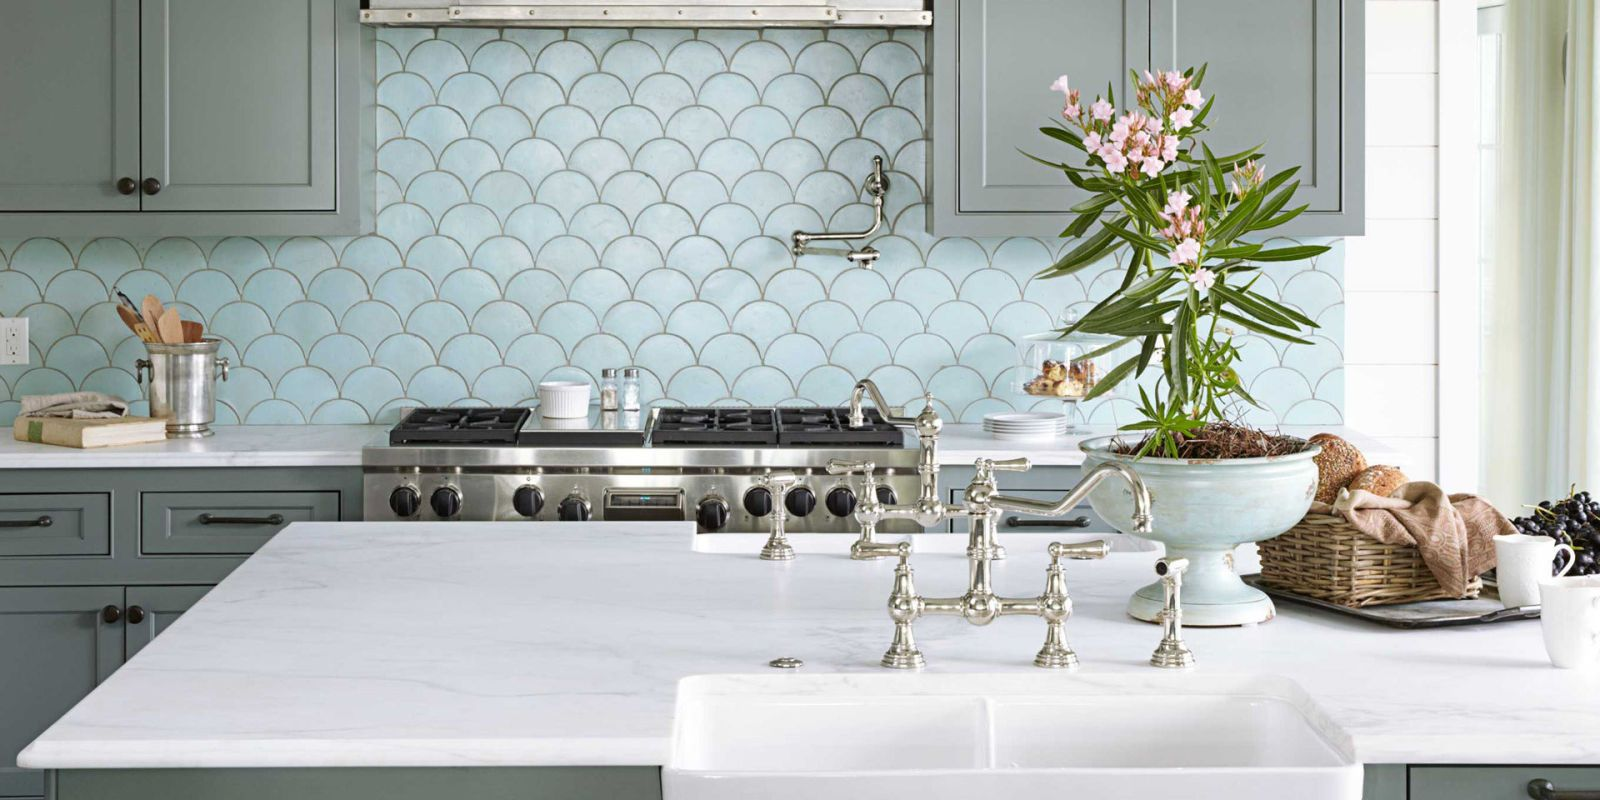 Get the Look: A Kitchen Inspired by the Ocean | Interior design ...